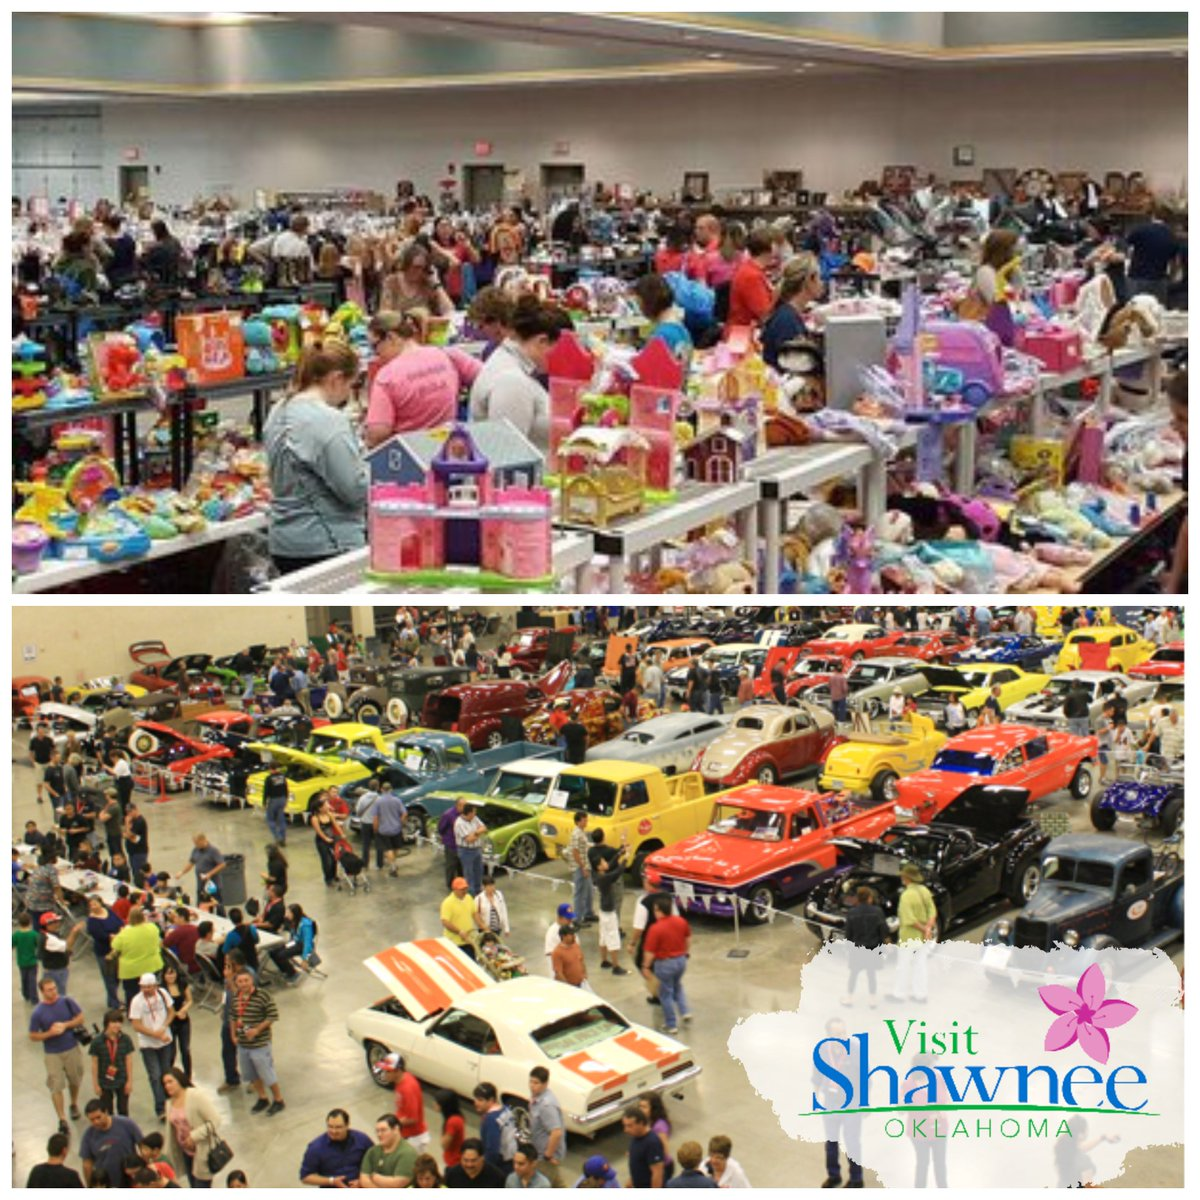 In two weeks, #OKHereWeGo get your shopping on with the Monkey Business Consignment Sale and Car Swap Meet. Lots of other events that weekend!   Make your plans here 👉 https://t.co/hAB1KWyQYJ then book your room and make a weekend of it in #ShawneeOK. https://t.co/L8SIU3ssS5